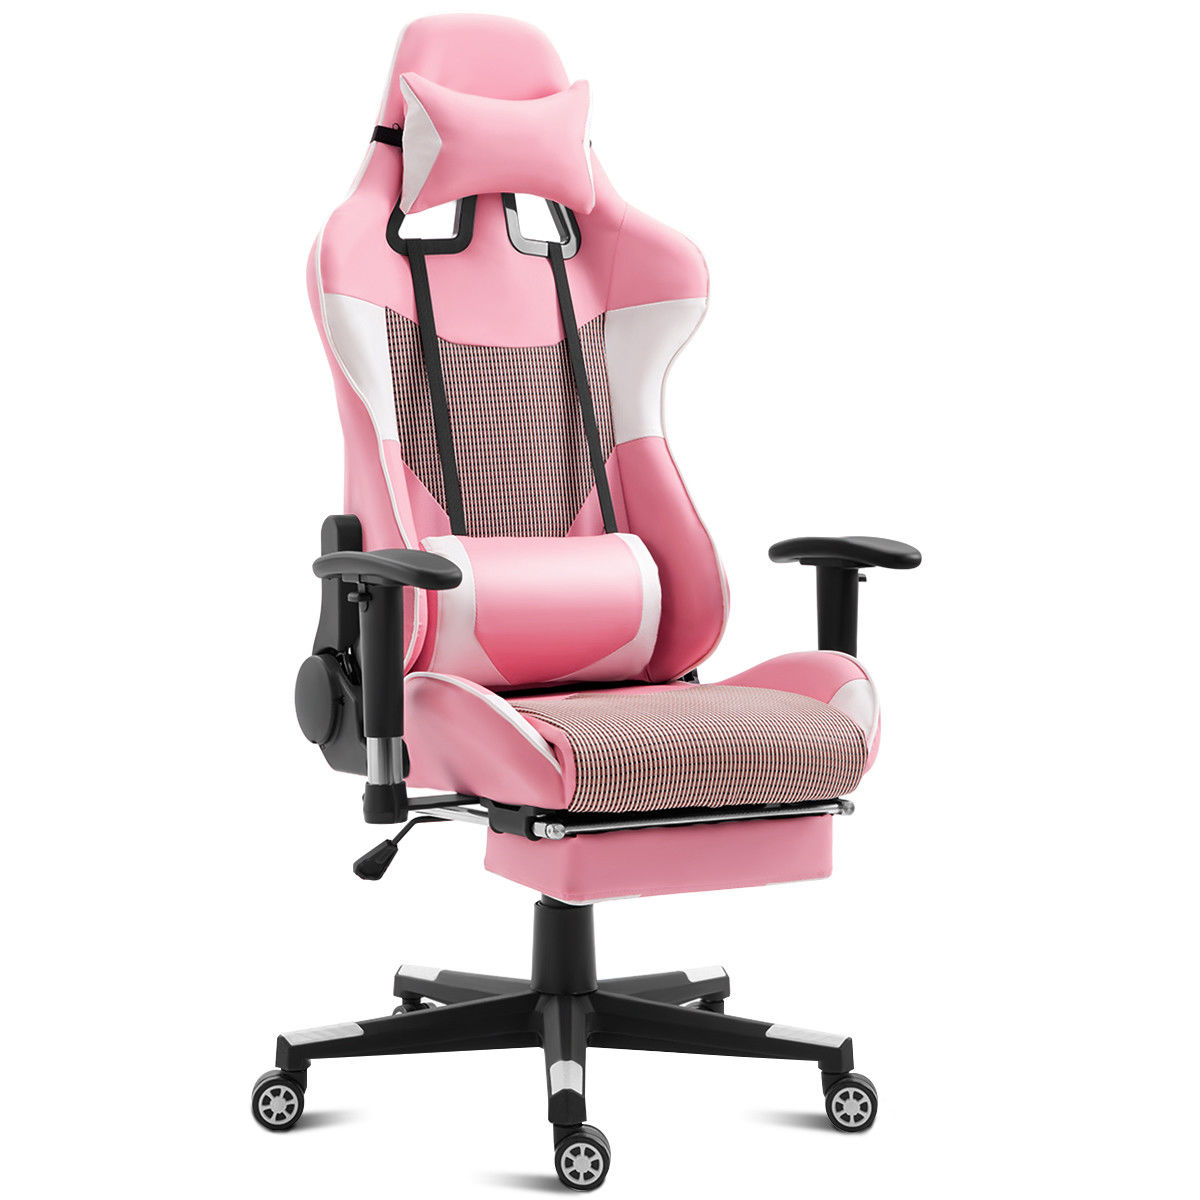 Costway Ergonomic Gaming Chair High Back Racing Office Chair w/Lumbar Support & Footrest